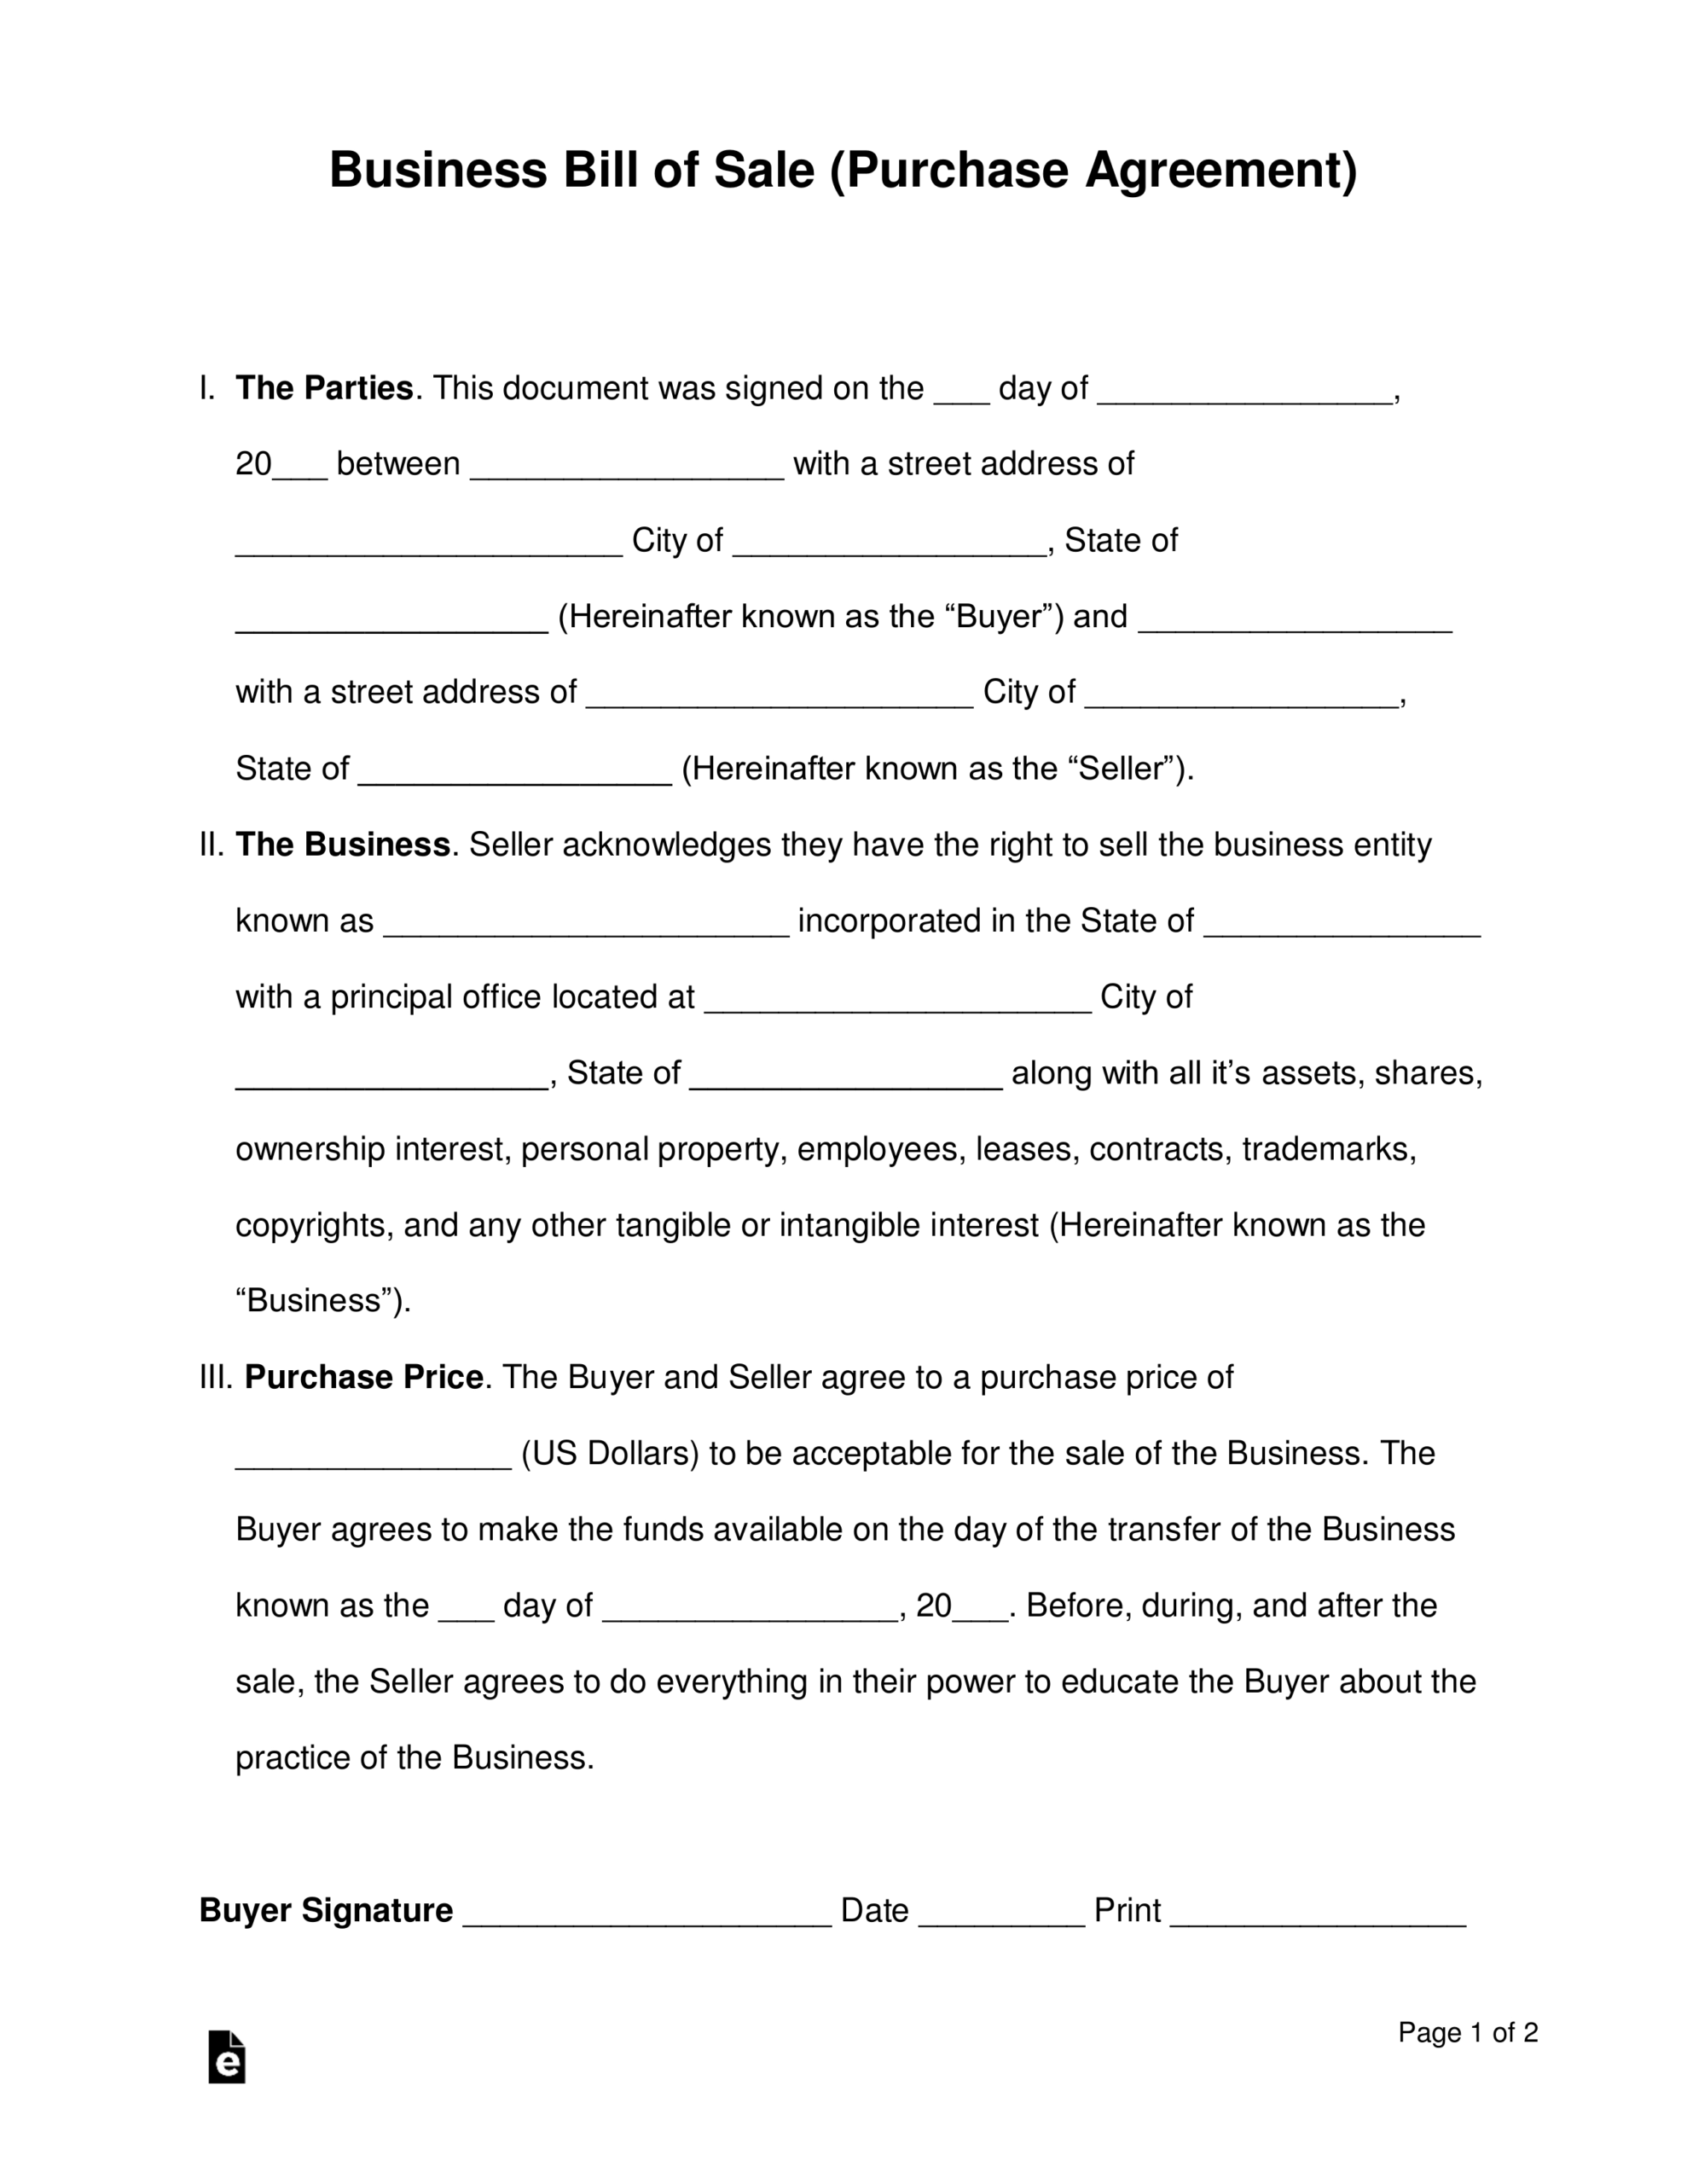 Free Business Bill Of Sale Form (Purchase Agreement) - Word Pertaining To Free Business Transfer Agreement Template